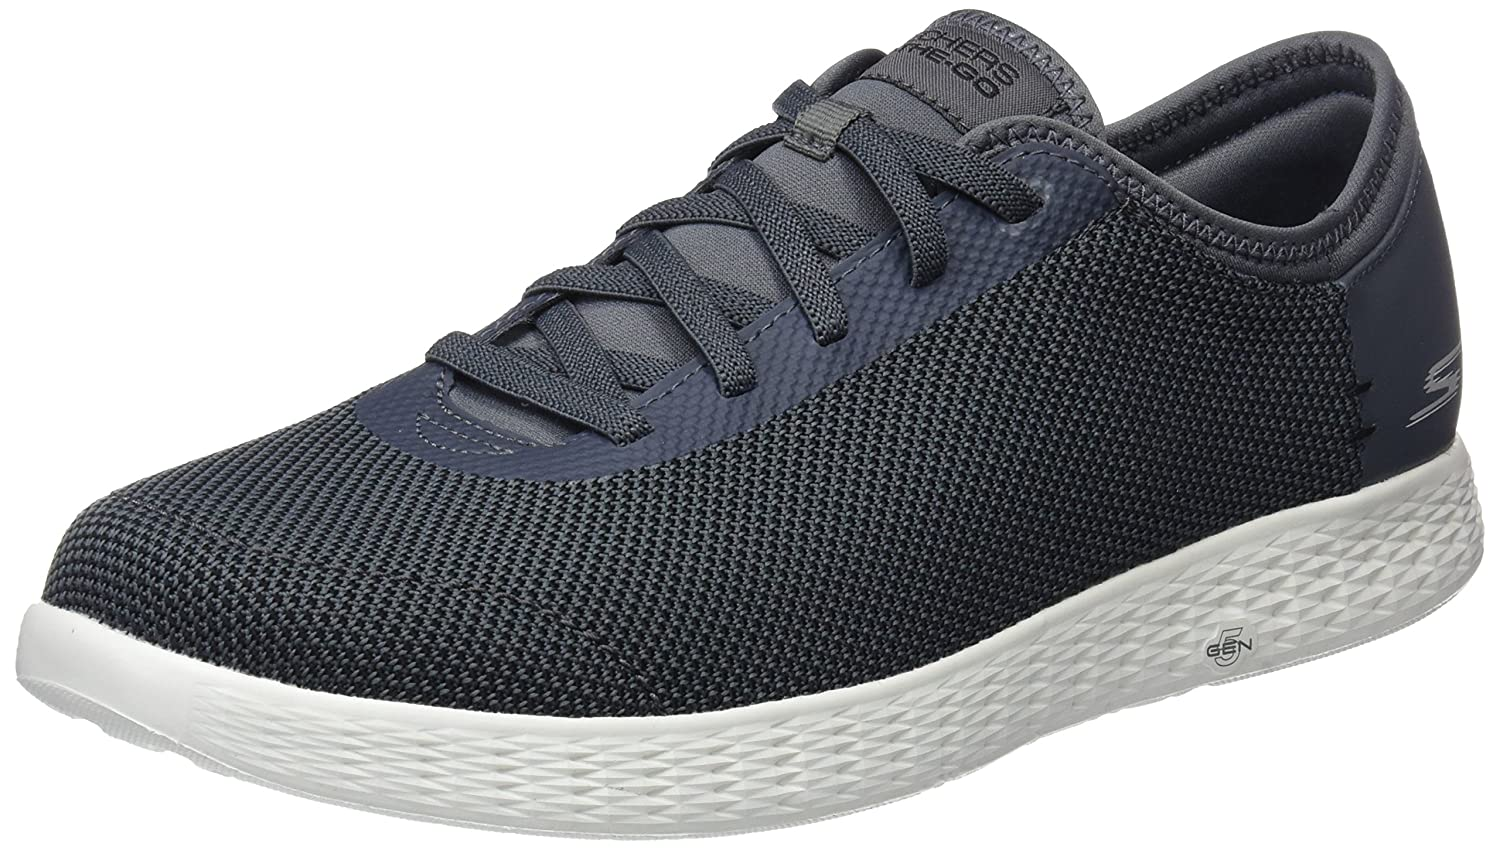 TALLA 44.5 EU. Skechers On-The-go Glide-Effusive, Zapatillas para Hombre, Gris (Charcoal), 44.5 EU